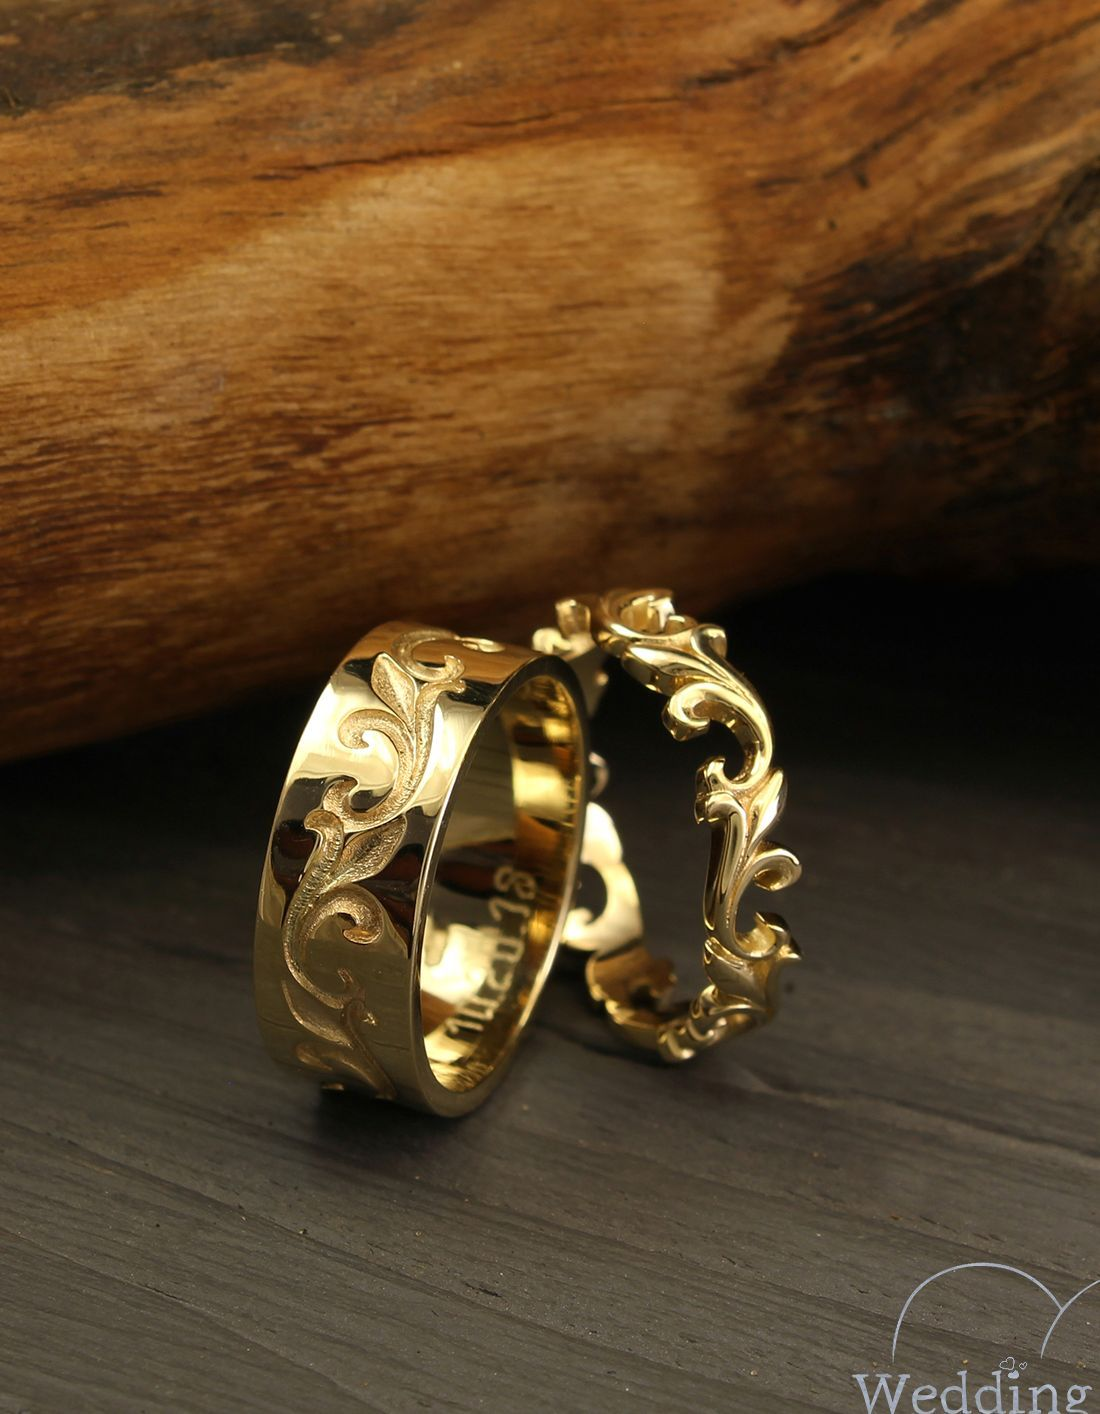 Unique Matching Wedding Bands Set Vine Wedding Rings His And Her Unusual Bands Set Couple Wedding Bands Unique Bands Set Love Rings Wedding Rings Sets His And Hers Couple Wedding Rings